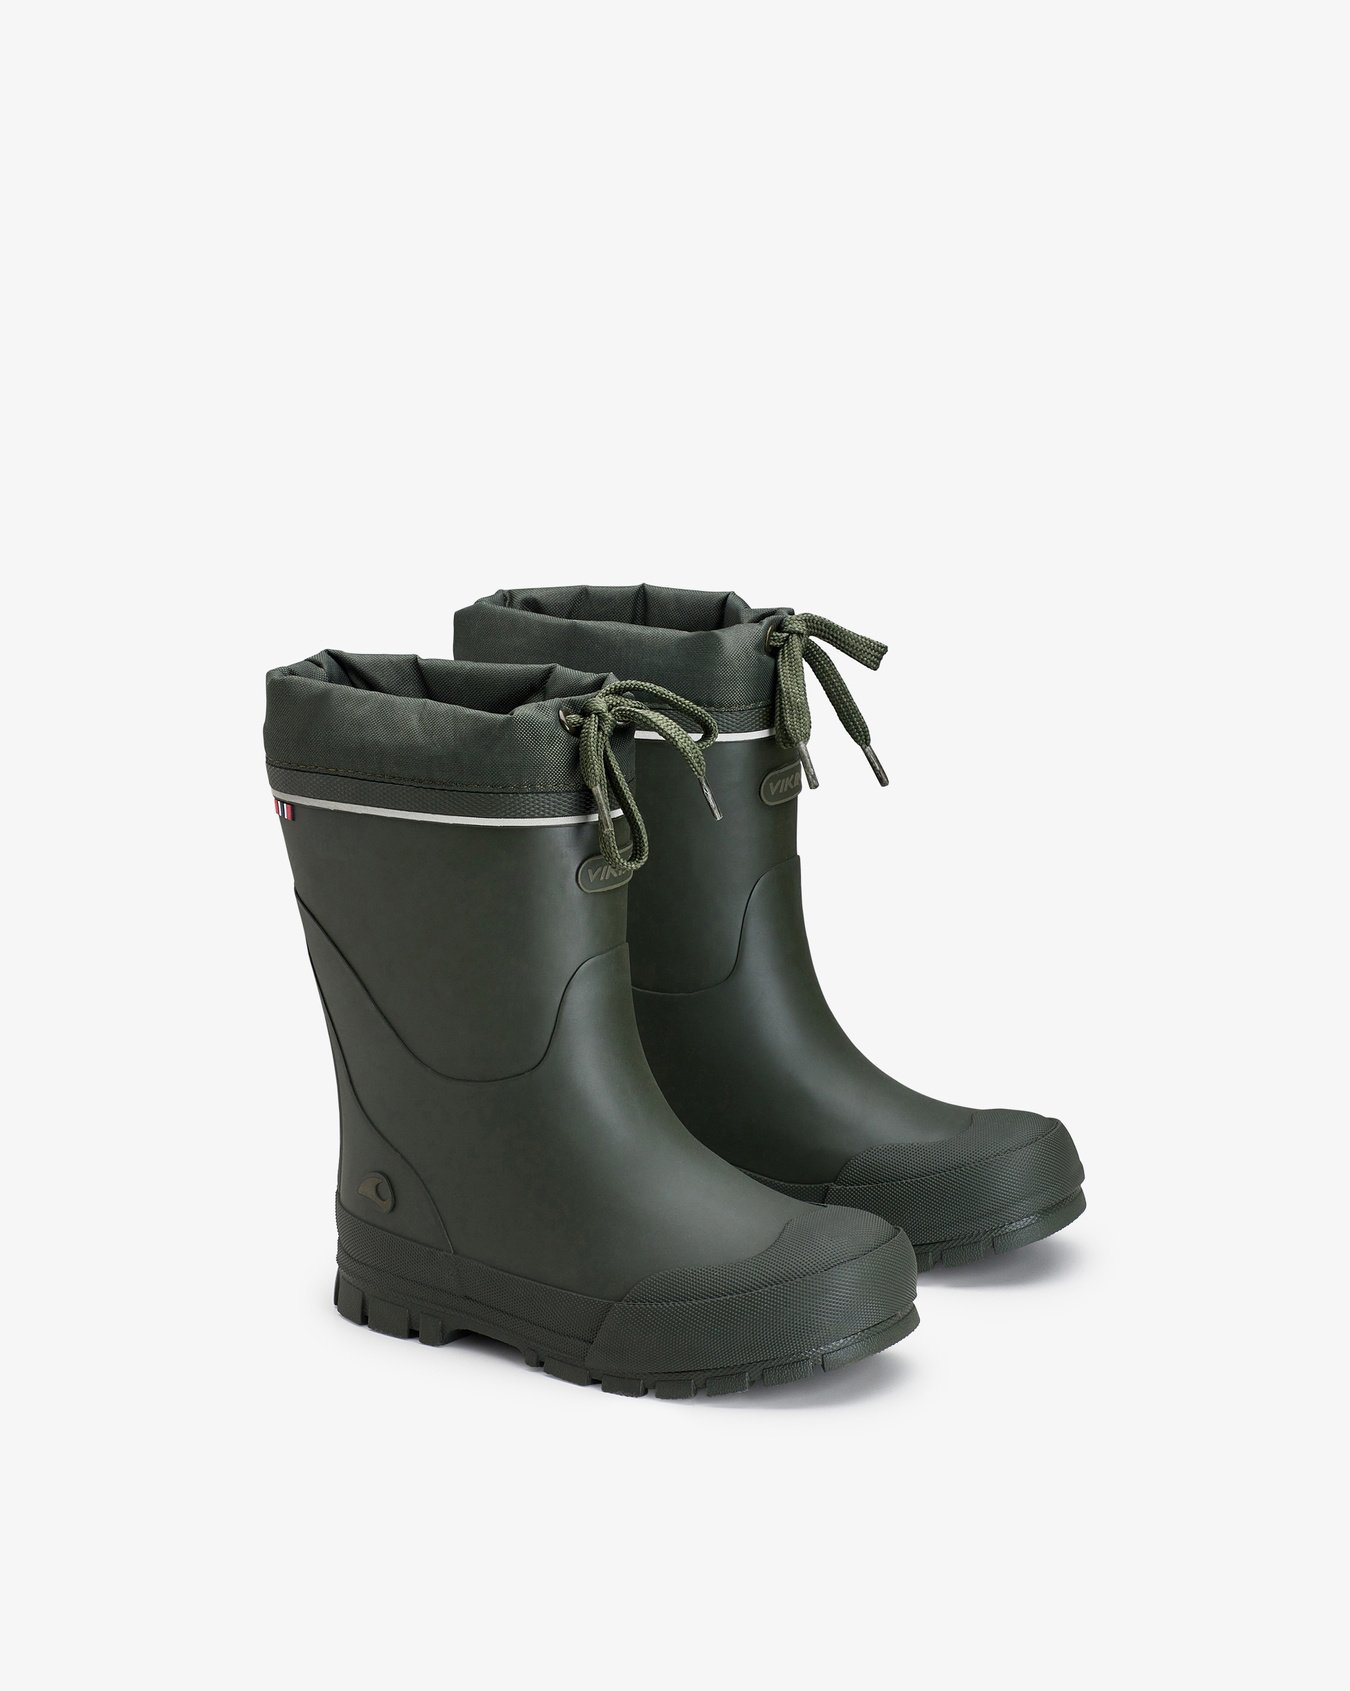 Jolly Thermo Green Rubber Boots